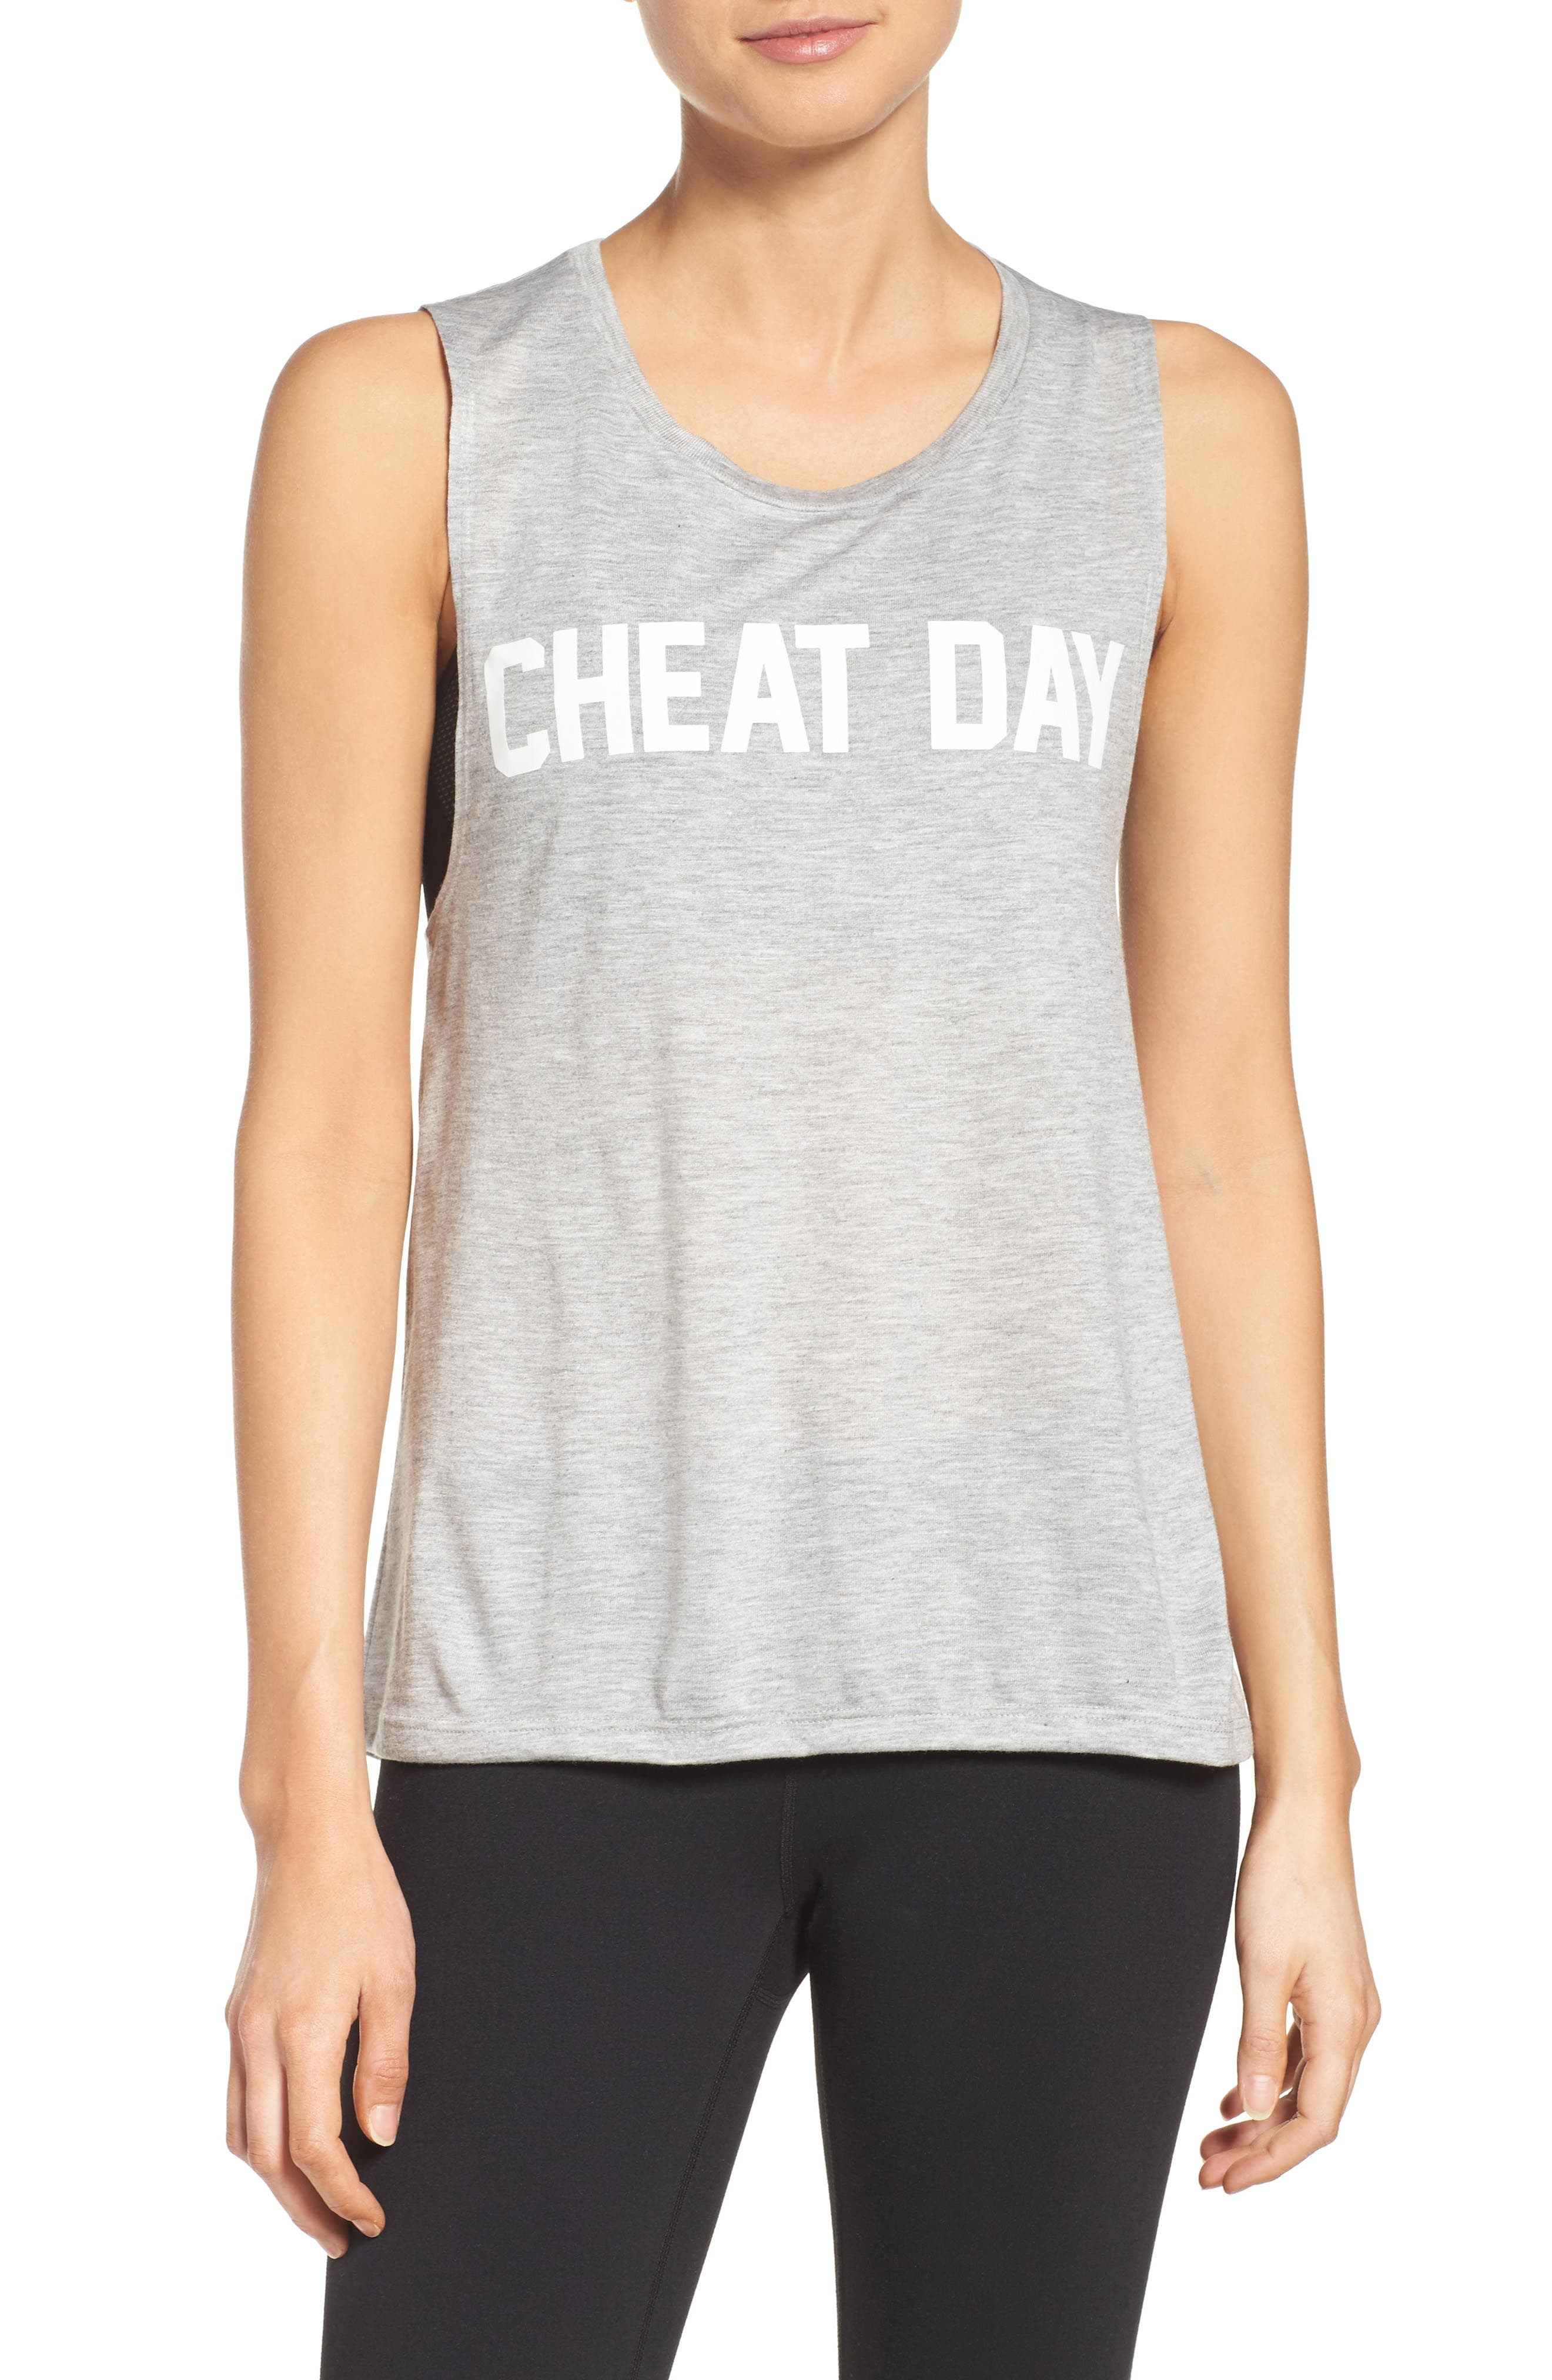 Cheat Day Tank,                         Main,                         color, 020